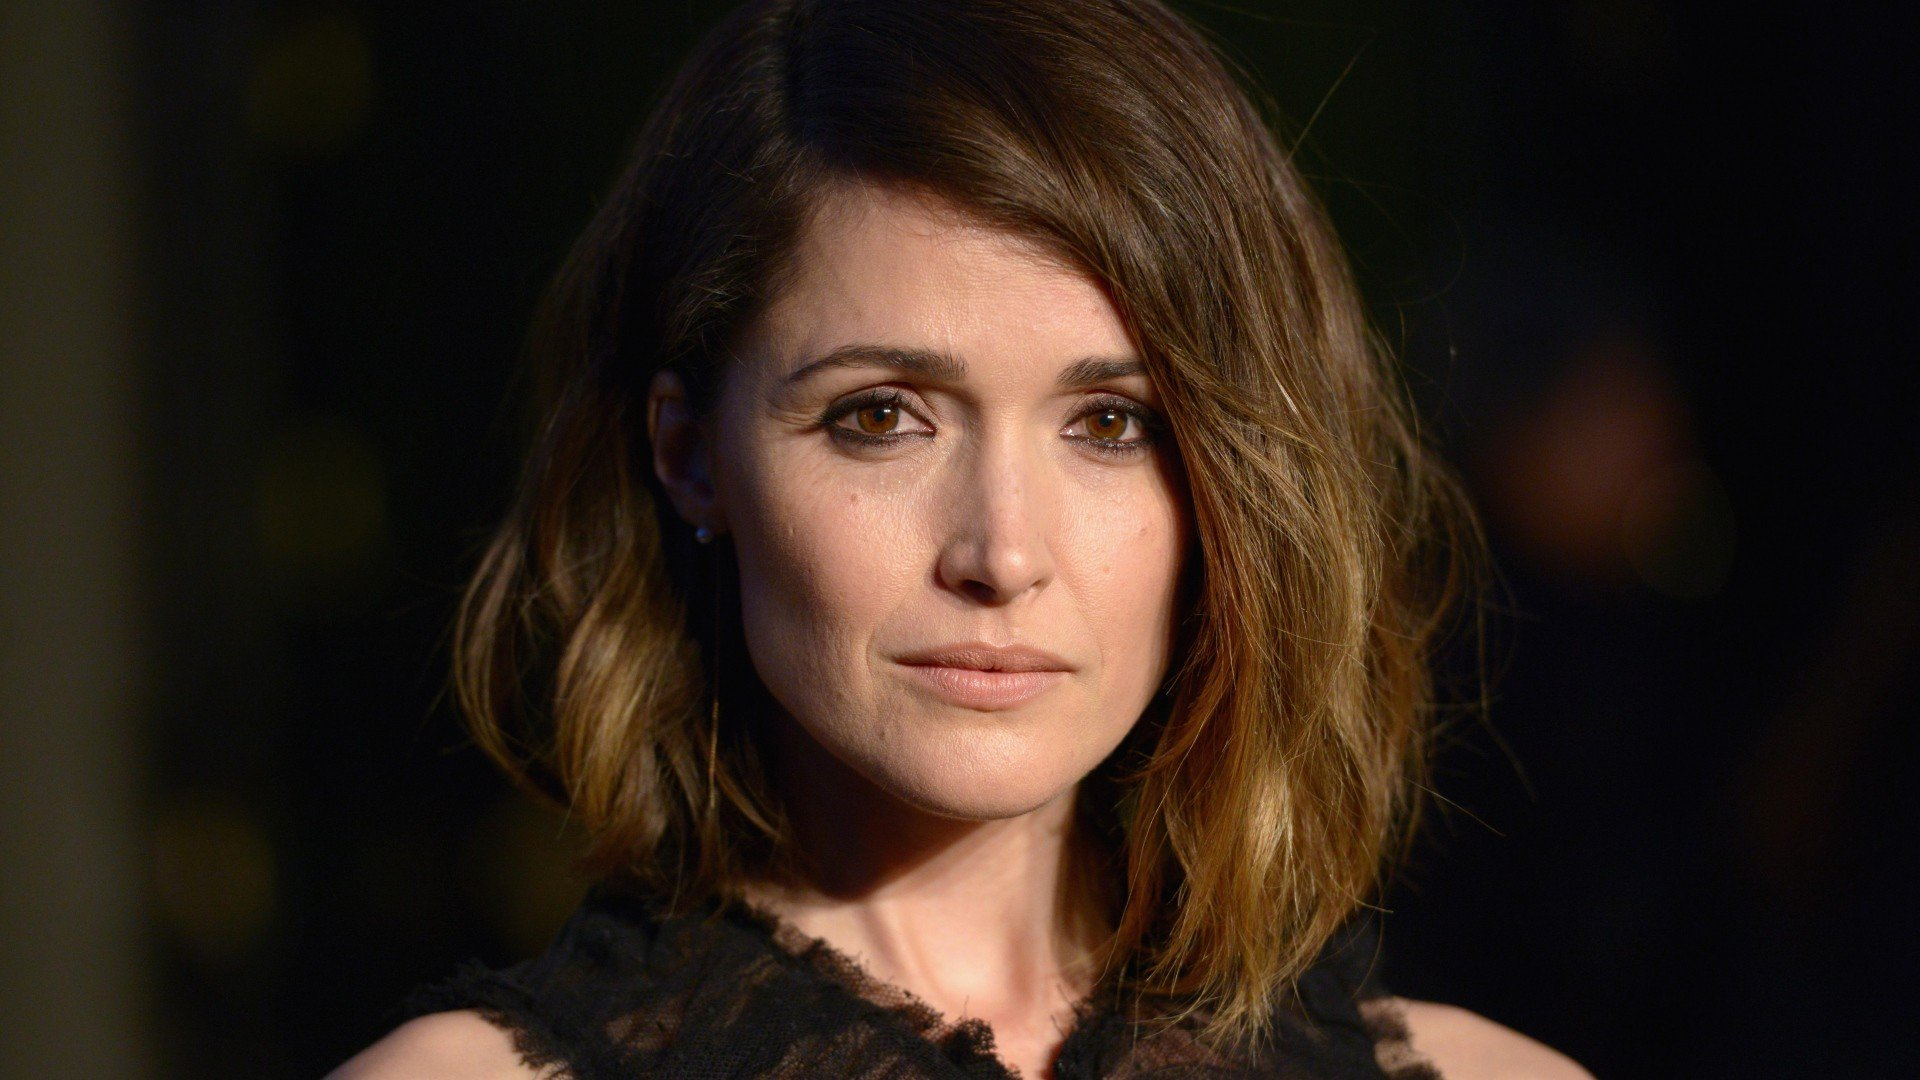 1920x1080 - Rose Byrne Wallpapers 9